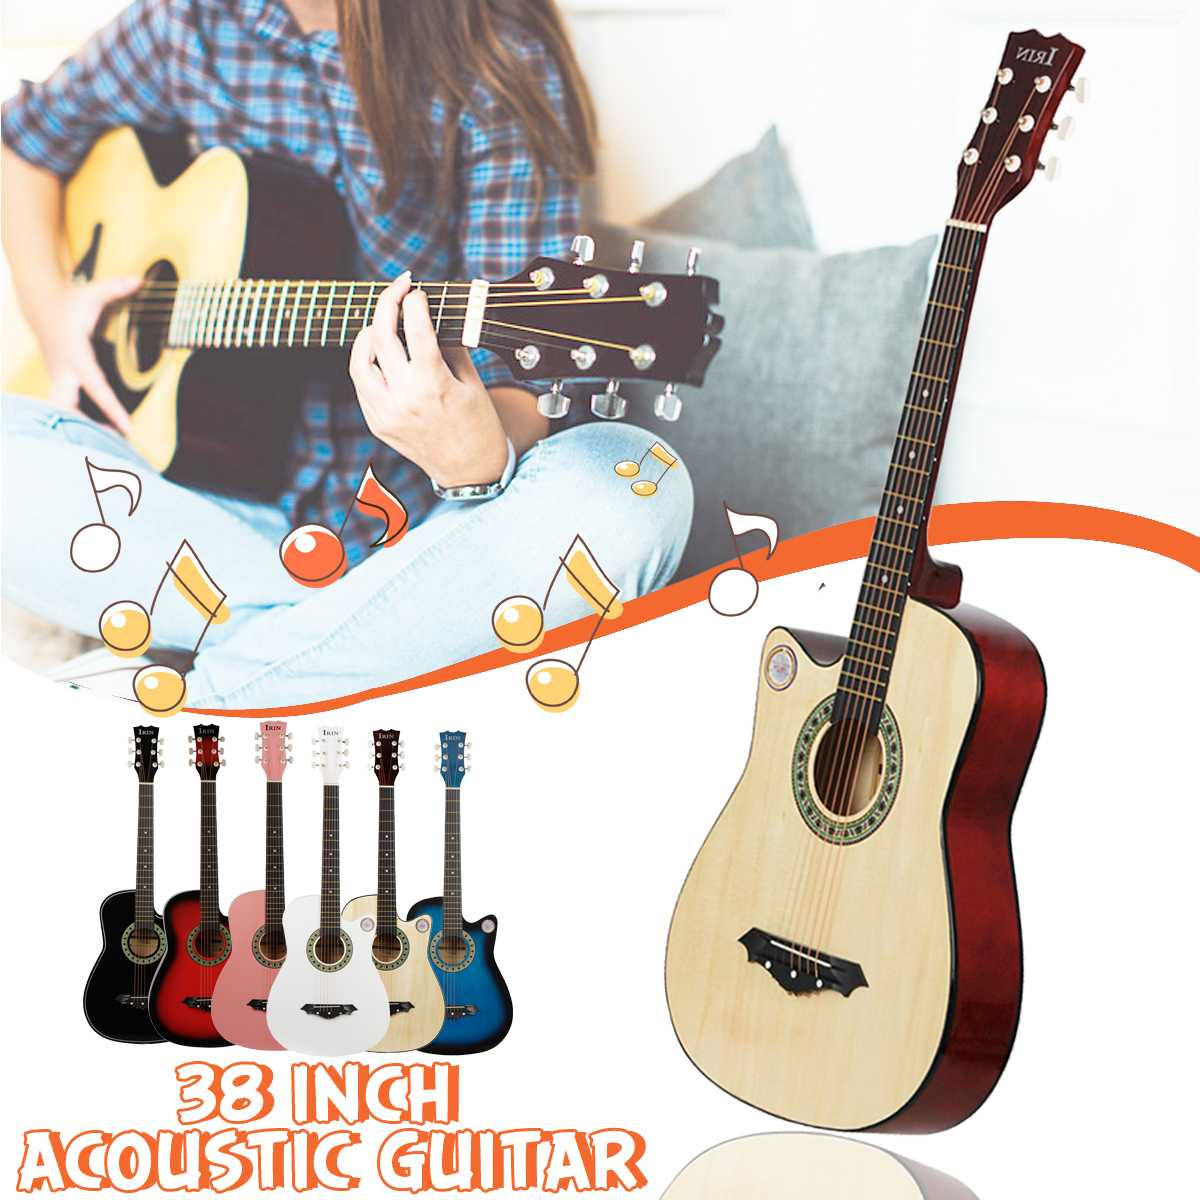 IRIN 38 Inch Guitar Acoustic Guitar Beginners Getting Started Practicing Guitar Stringed Instruments Guitar  6 ColorIRIN 38 Inch Guitar Acoustic Guitar Beginners Getting Started Practicing Guitar Stringed Instruments Guitar  6 Color